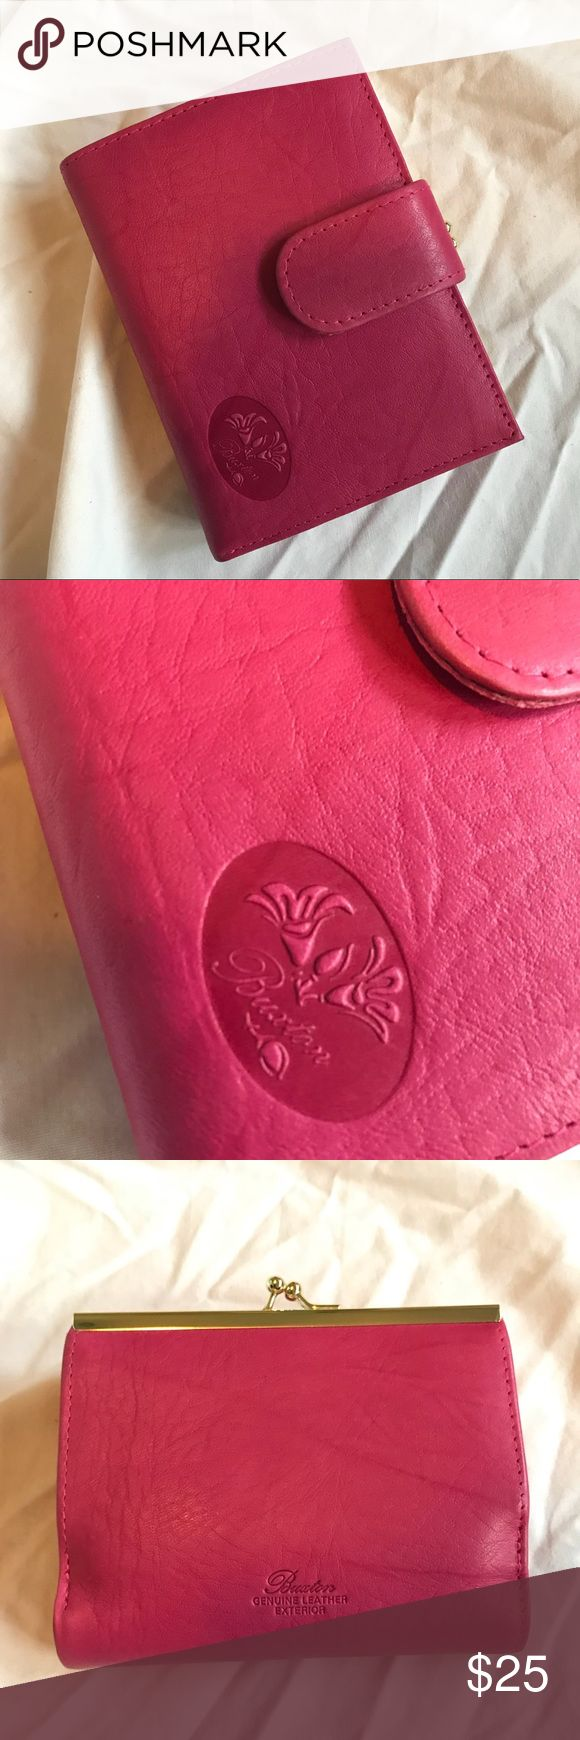 Pink Burton Wallet BRAND NEW! Never used pink leather wallet by Burton. This wallet has two buttons for the snap, lots of credit card slots, a clear slot for your ID, two pouches for bills and a change pouch with a divider in the middle. No trades, offers welcome. Burton Bags Wallets